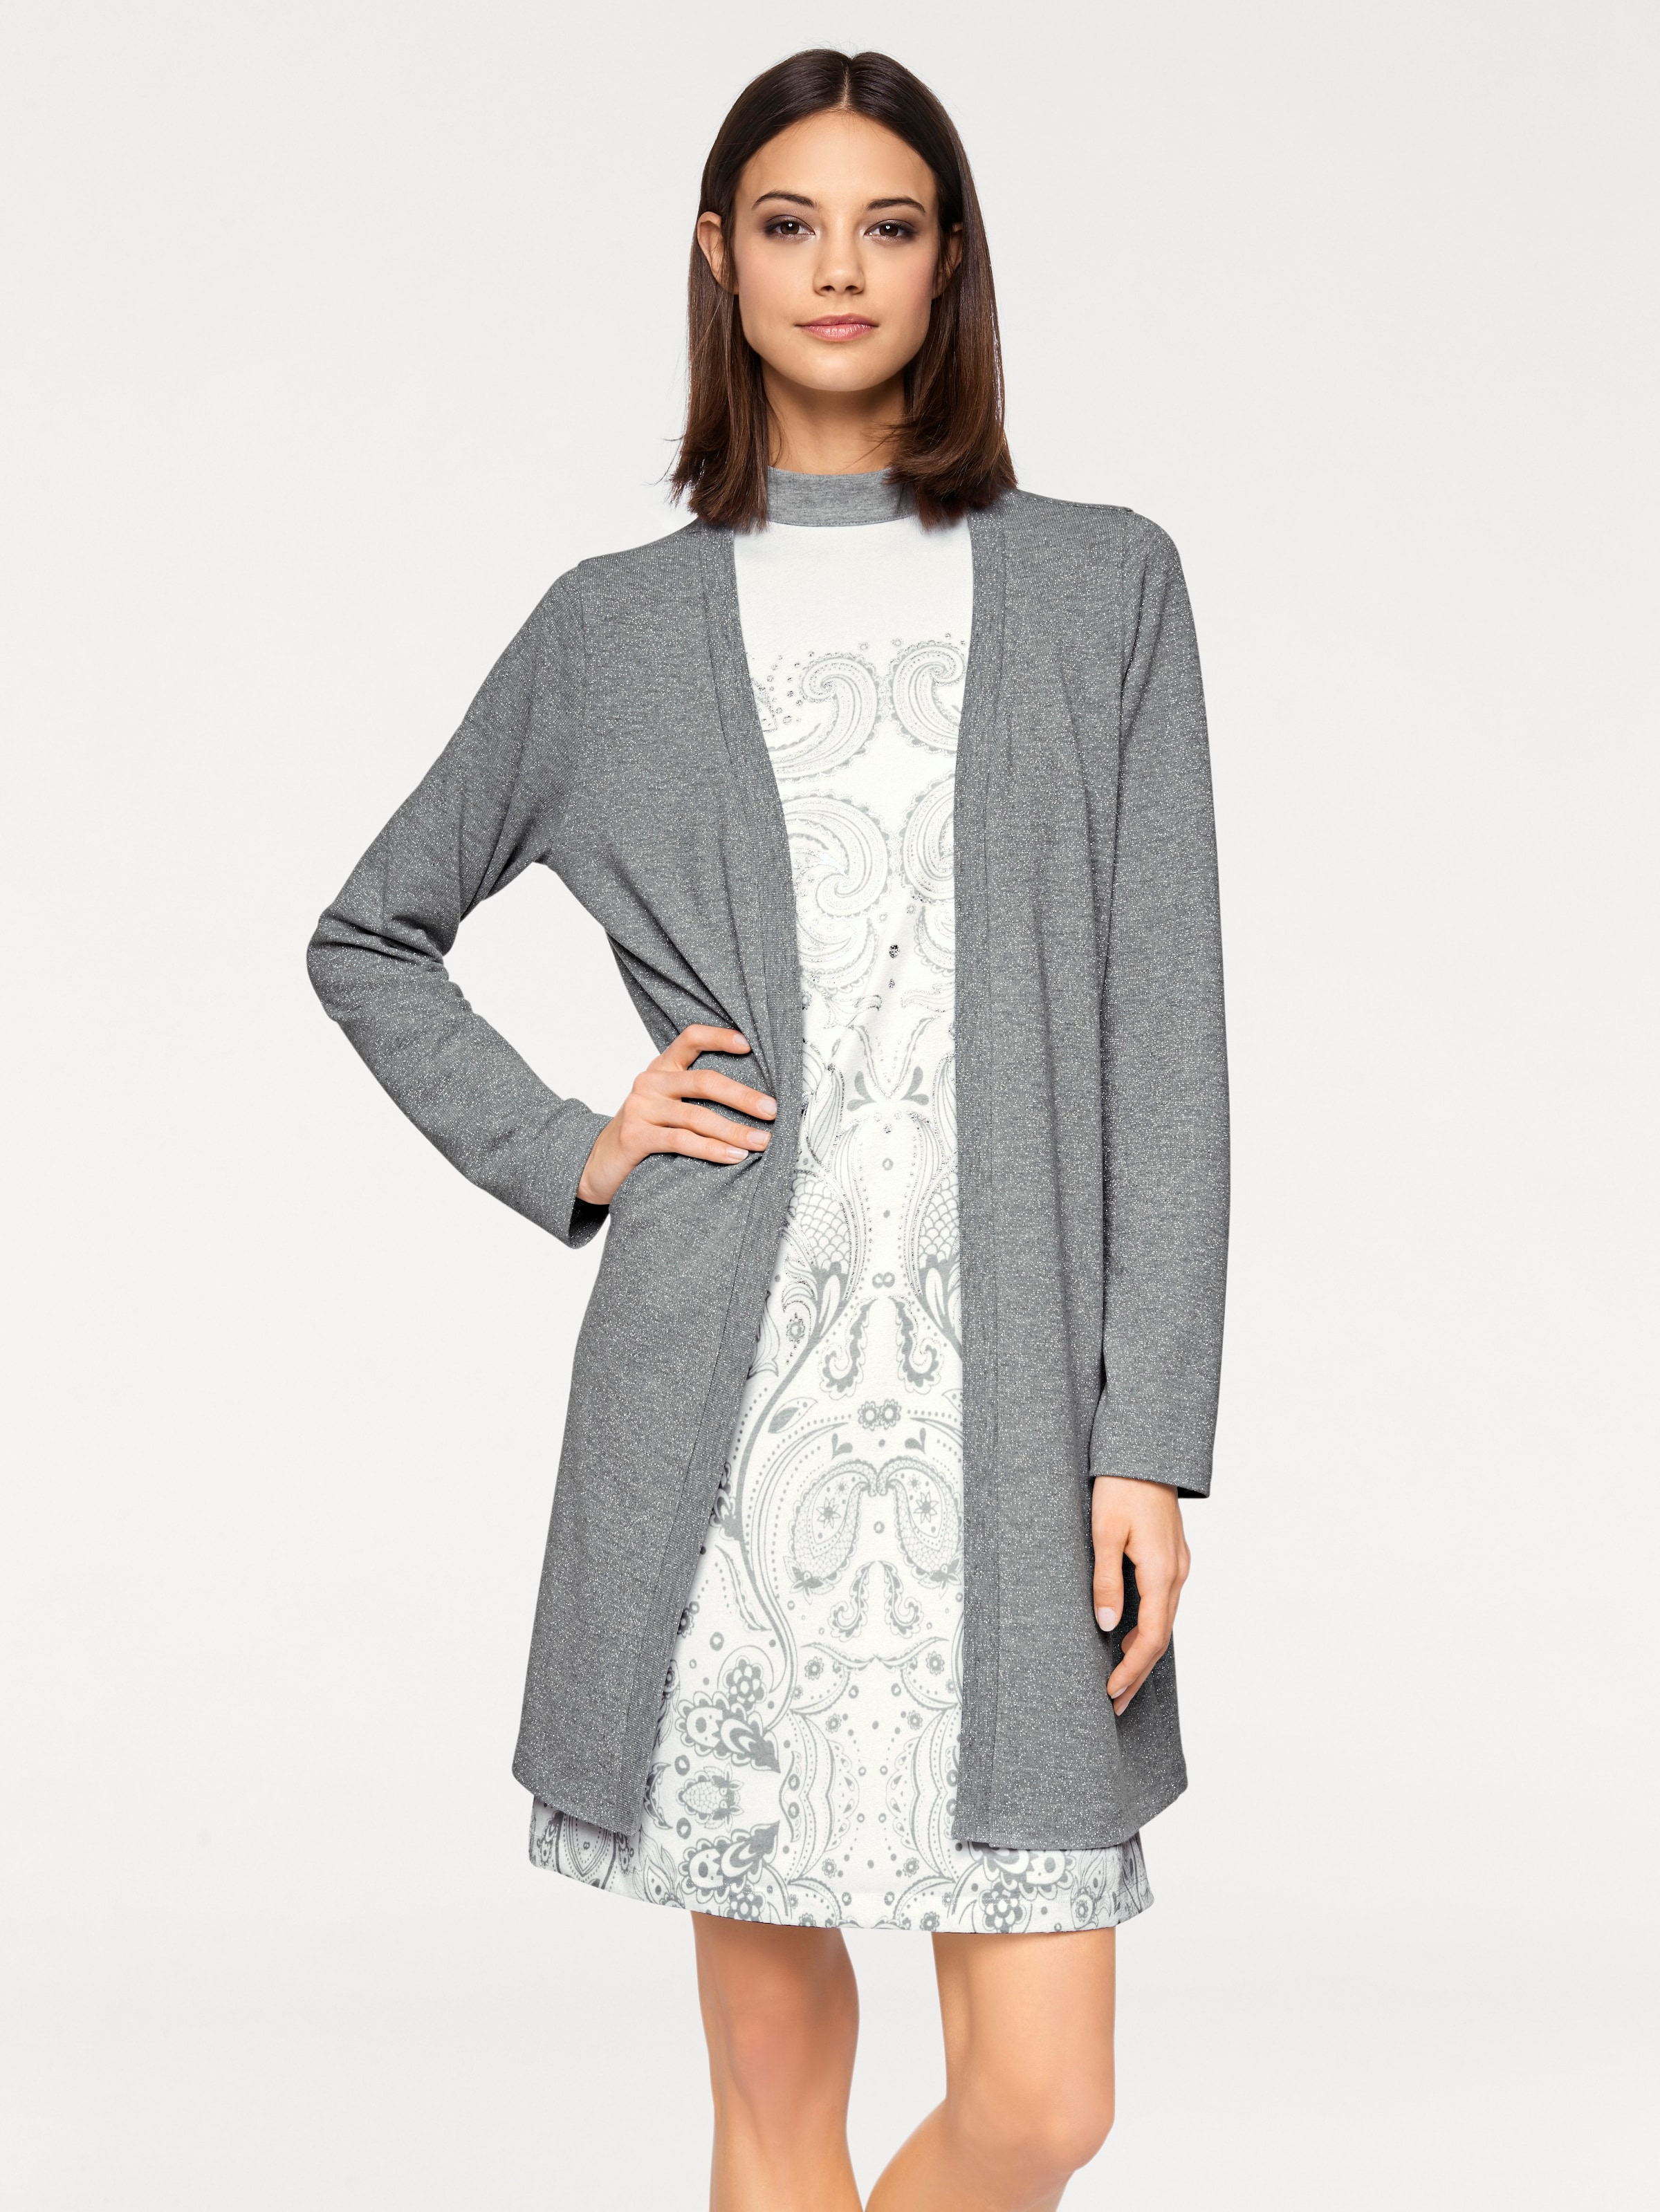 Best Connections Feinstrickjacke C Connections heine Best C B B by v4SxqHp